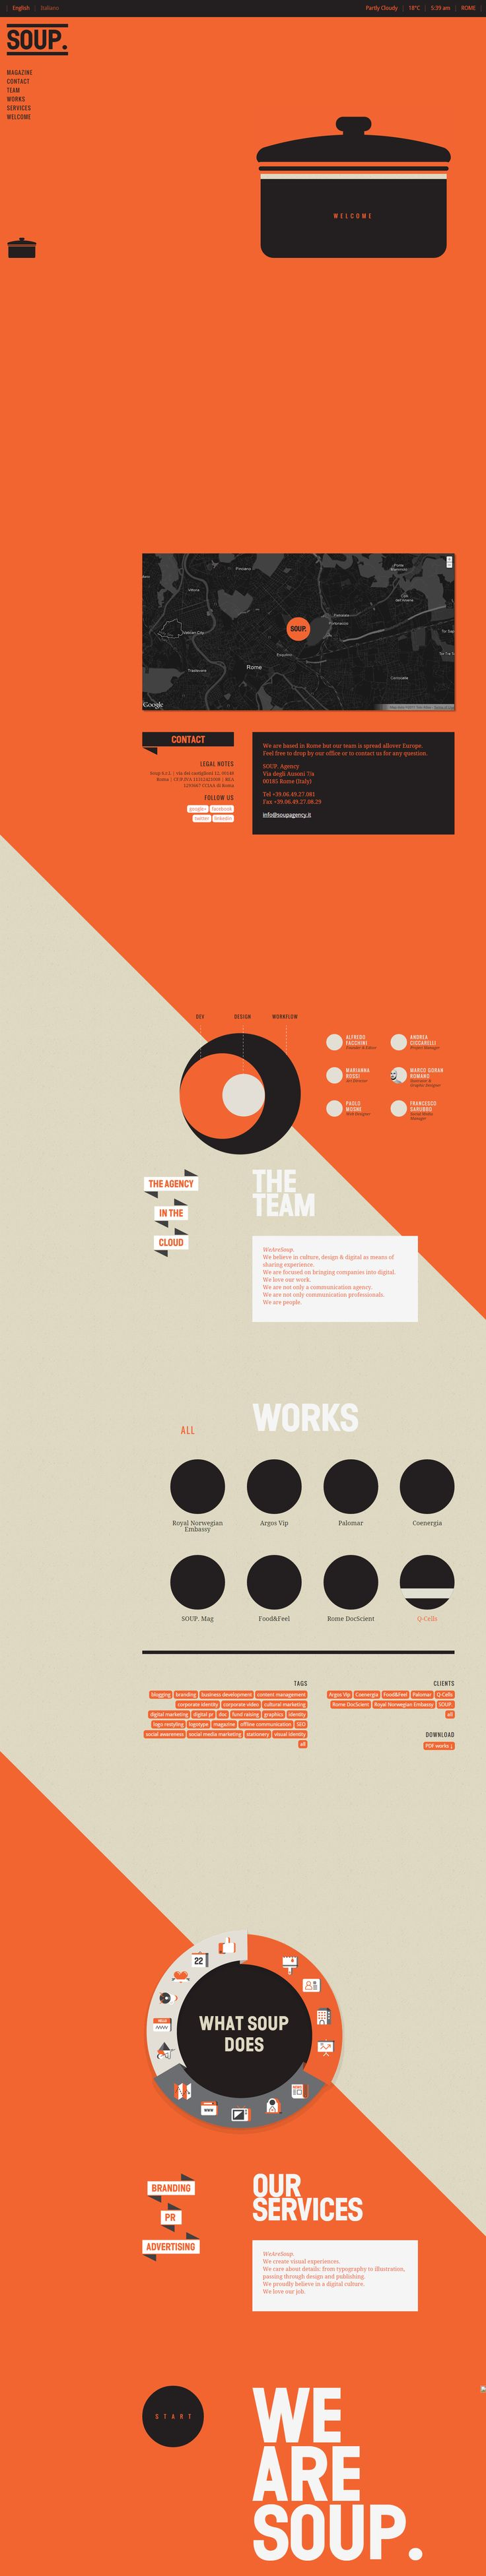 Unique Web Design, Soup Agency #WebDesign #Design (http://www.pinterest.com/aldenchong/)